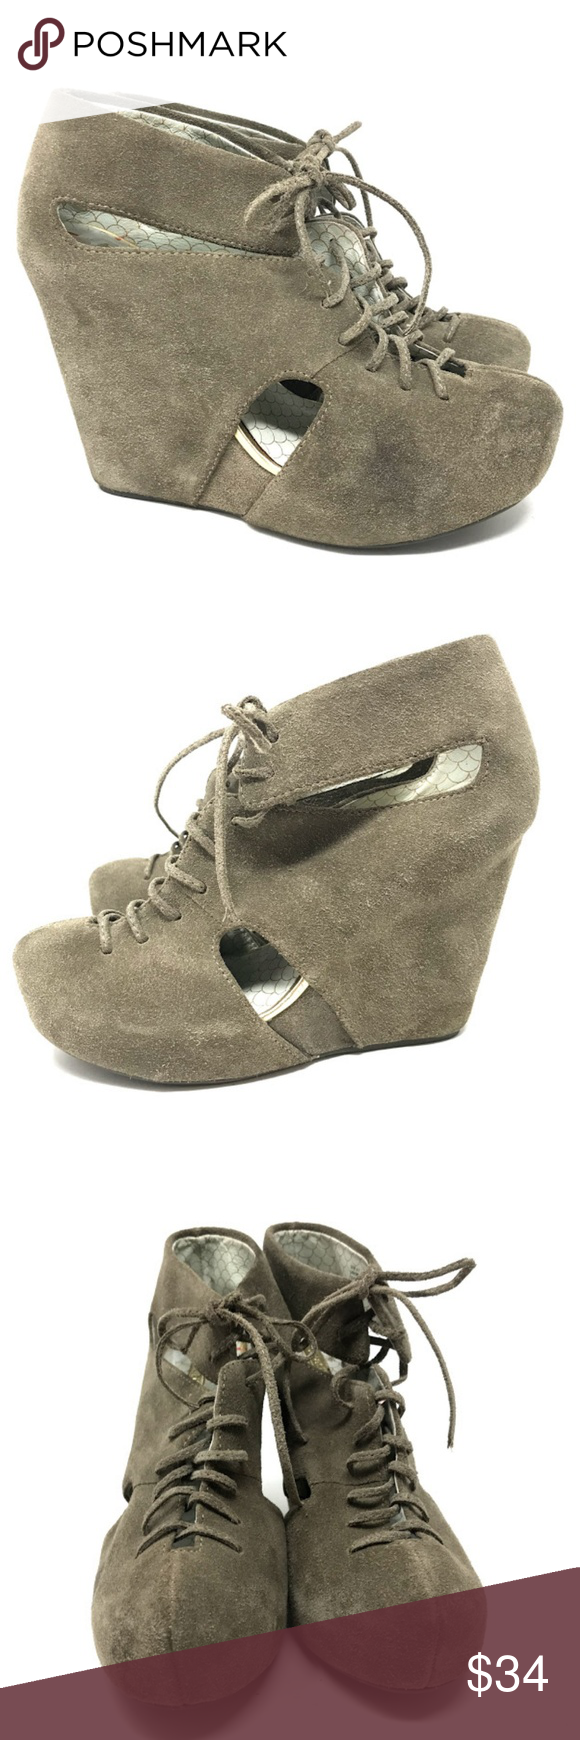 Urban Outfitters Matiko Cutout Wedge Boot 6.5 Urban Outfitters Matiko Suede Booties 6.5 Cutout Detail Wrapped/Covered Platform Wedge Heel Lace Up Leather Boot   090618-MS Urban Outfitters Shoes Ankle Boots & Booties